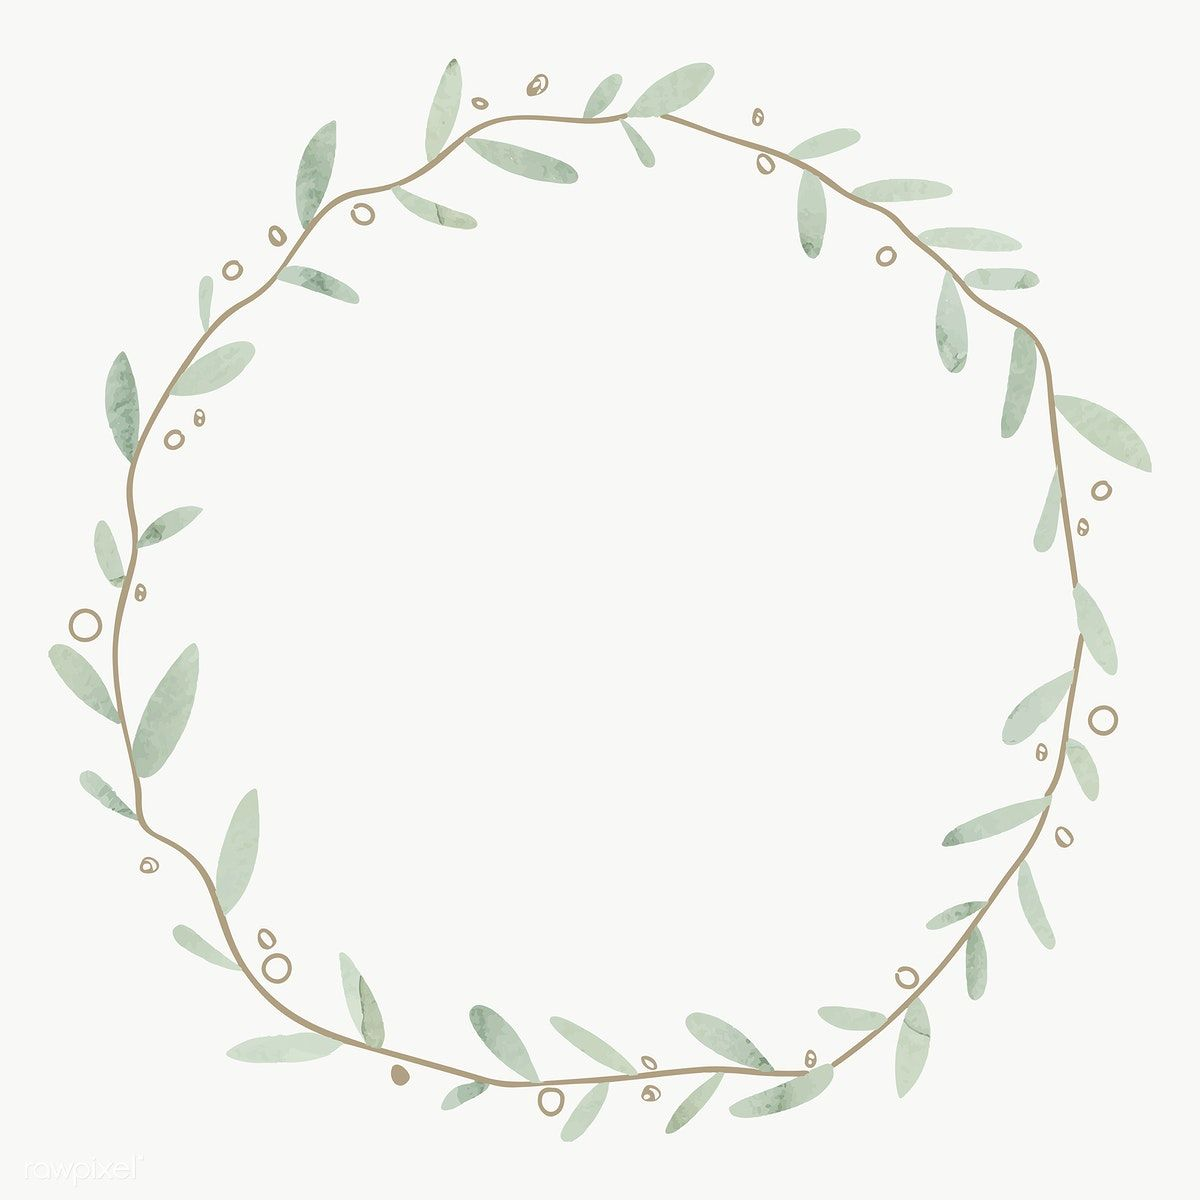 Holiday Wreath Clipart Christmas Laurel Wreath Png Pine Wreath Frame Pine Cone Art Wedding Logo Label Design Image Instant Download Christmas Clipart Pine Wreath Pine Cone Art